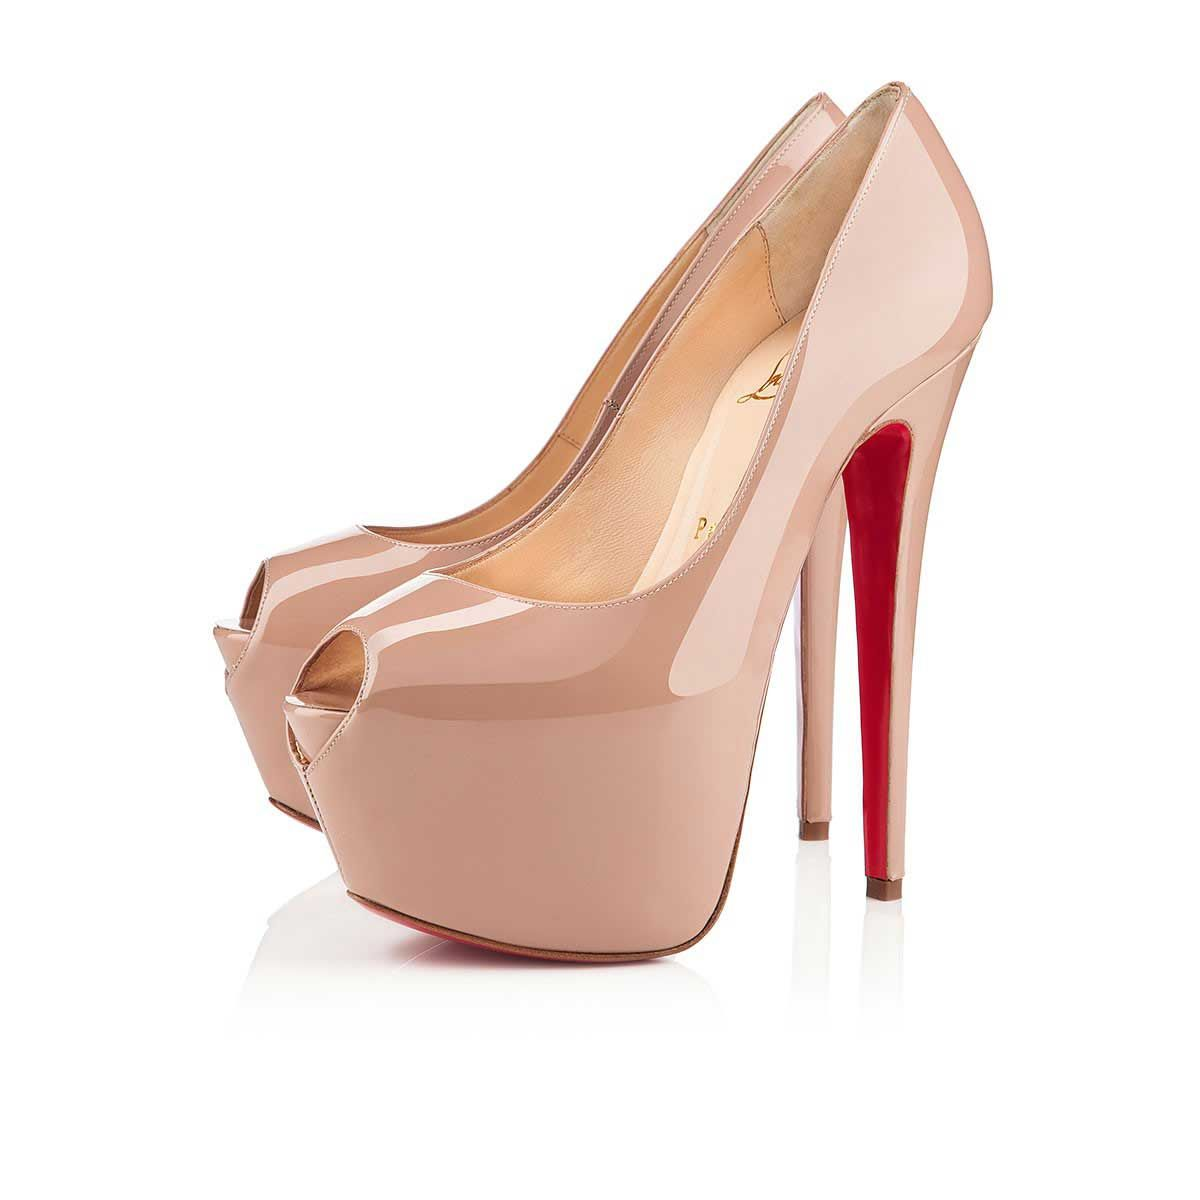 Christian Louboutin Canada Official Online Boutique - Highness 160 Nude  Patent Leather available online. Discover more Women Shoes by Christian  Louboutin